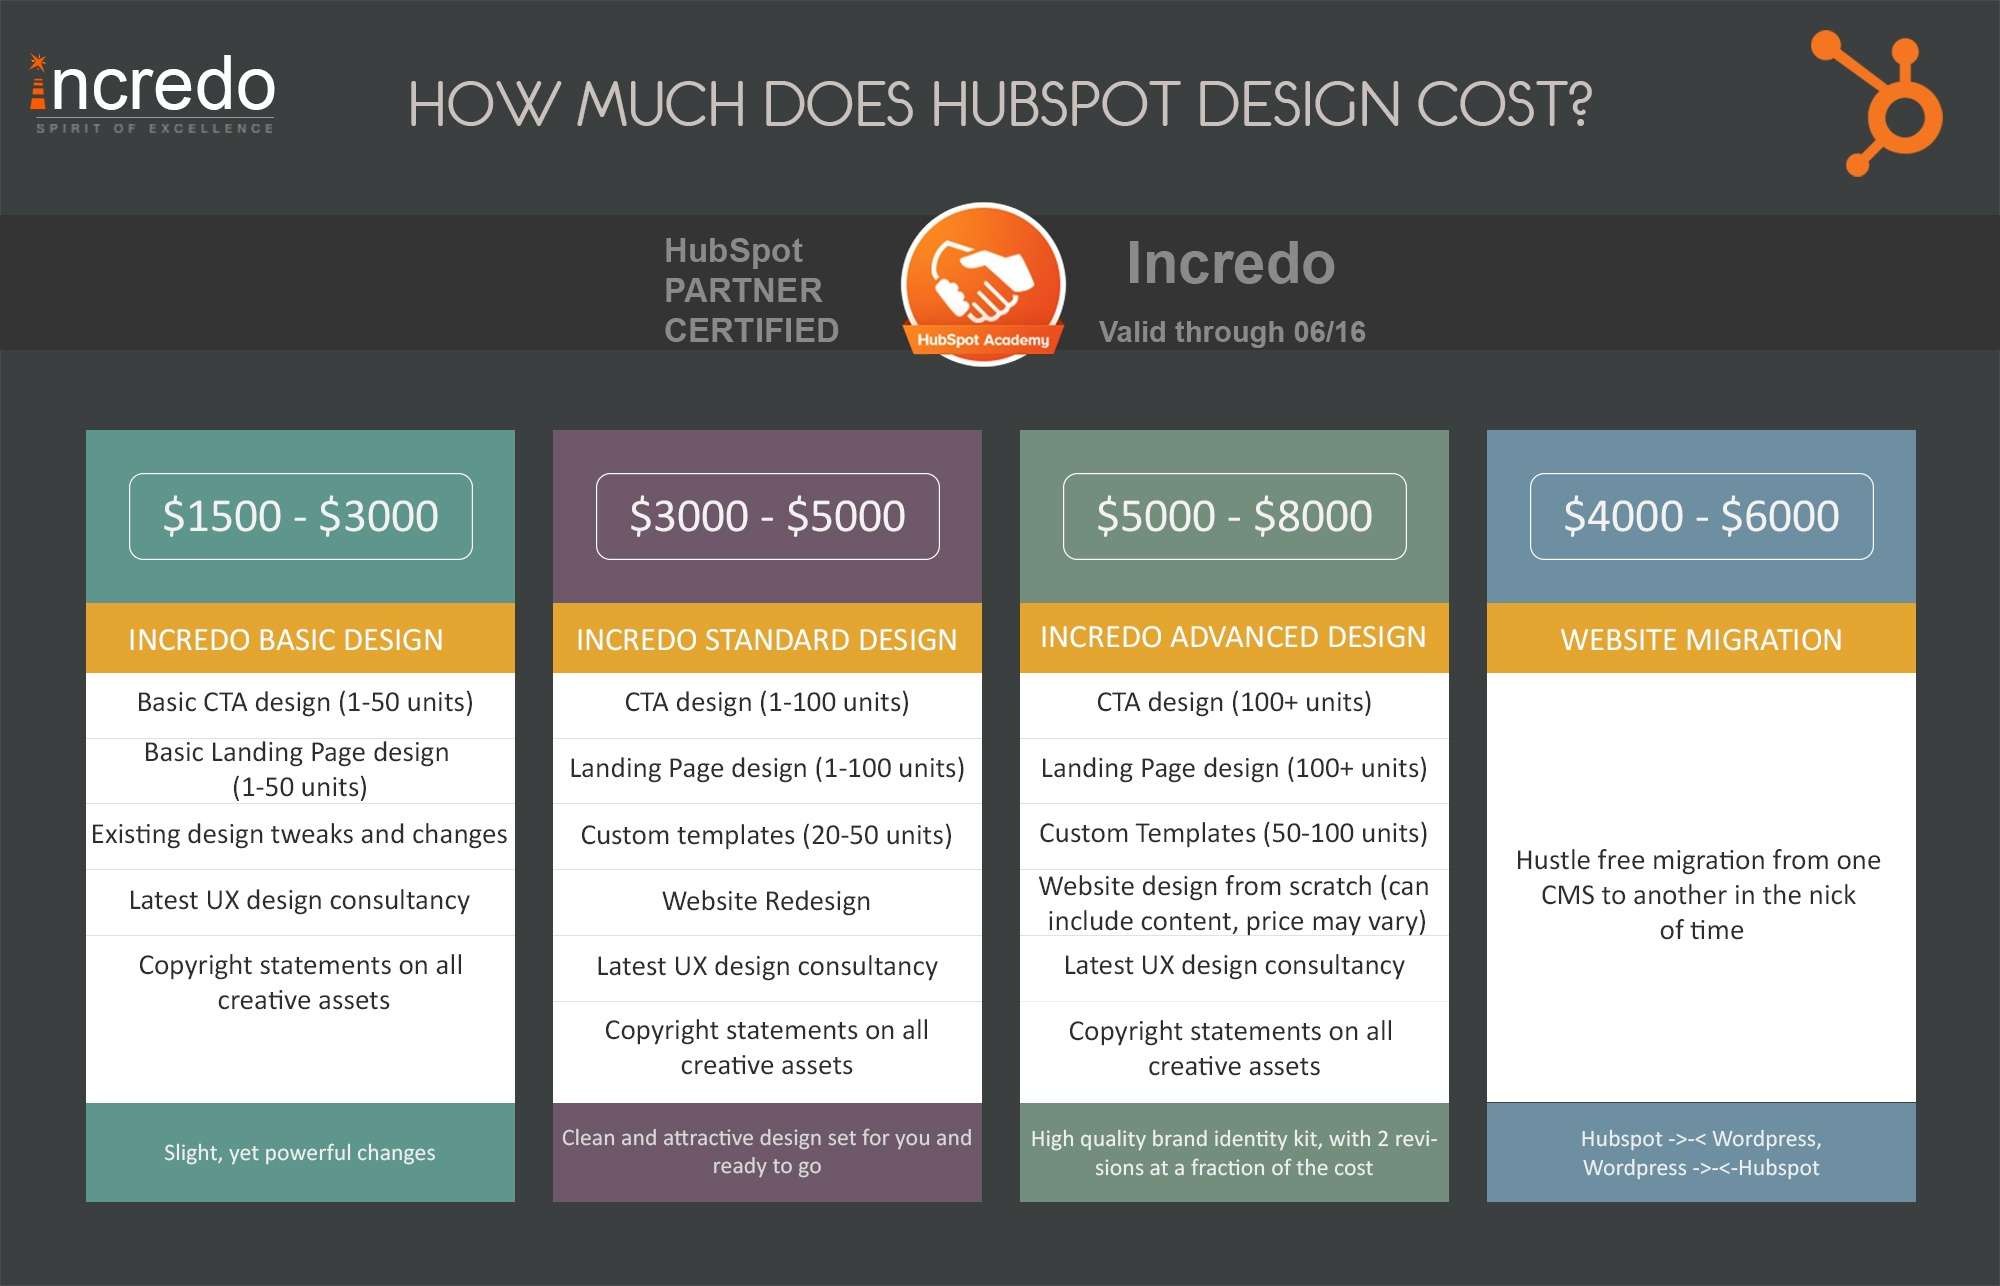 pricig_table_hubspot_design_cost_incredo